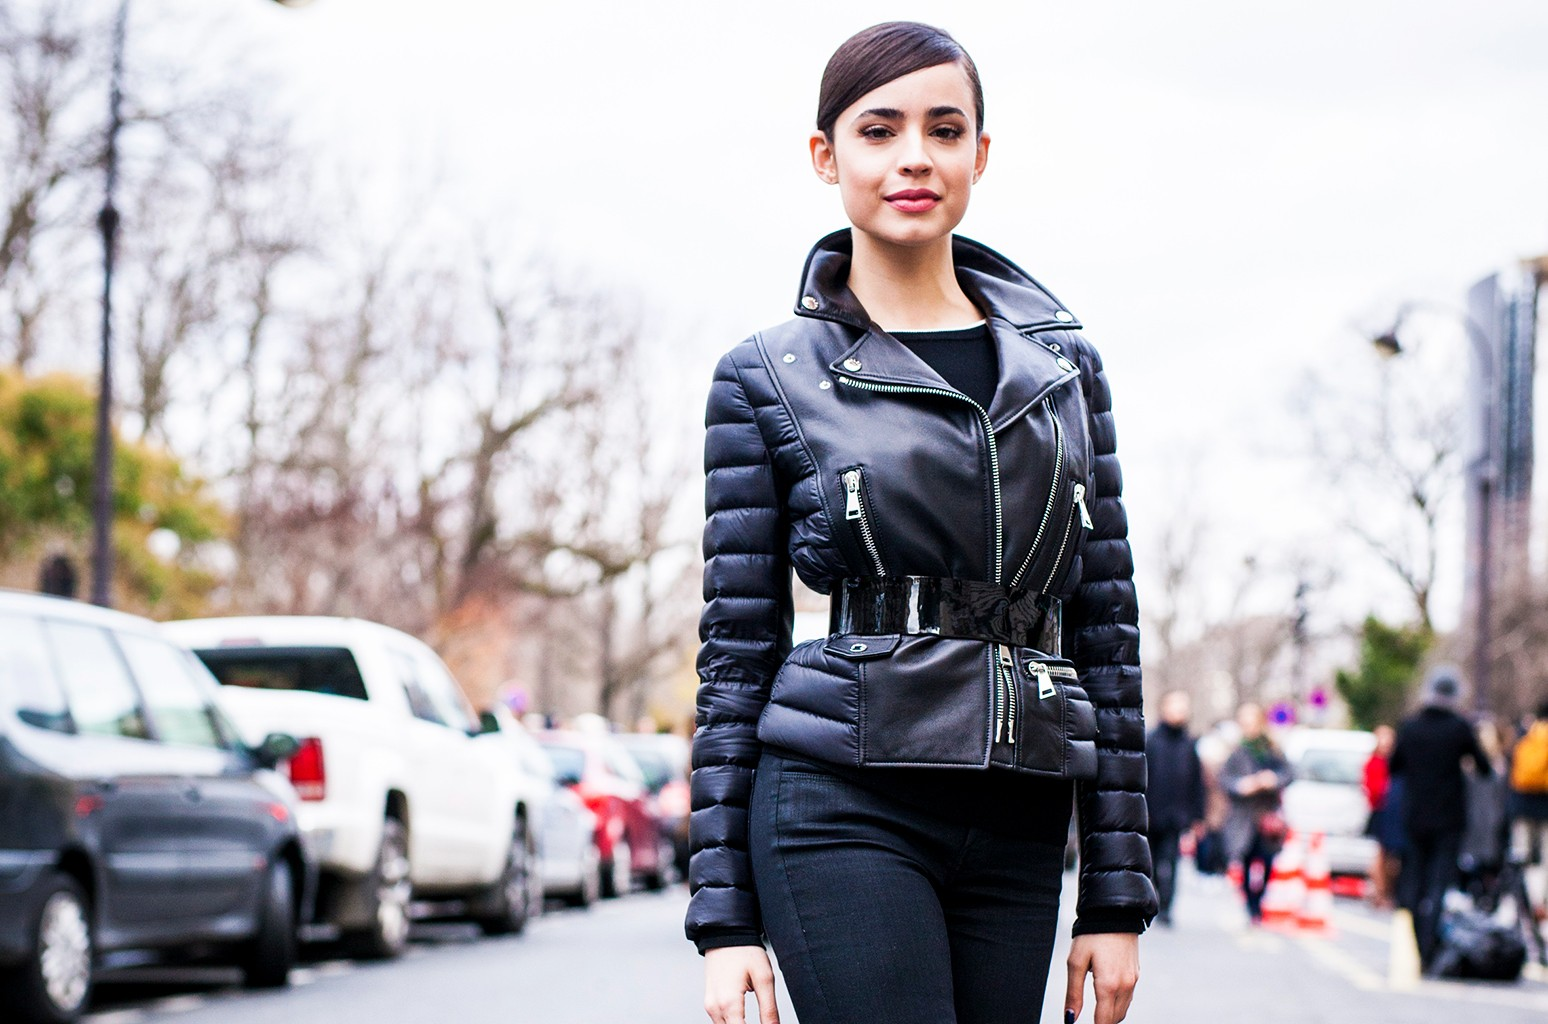 Sofia Carson is seen in the streets of Paris after the Moncler Gamme Rouge show during Paris Fashion Week Womenswear Fall/Winter 2017/2018 on March 7, 2017 in Paris.